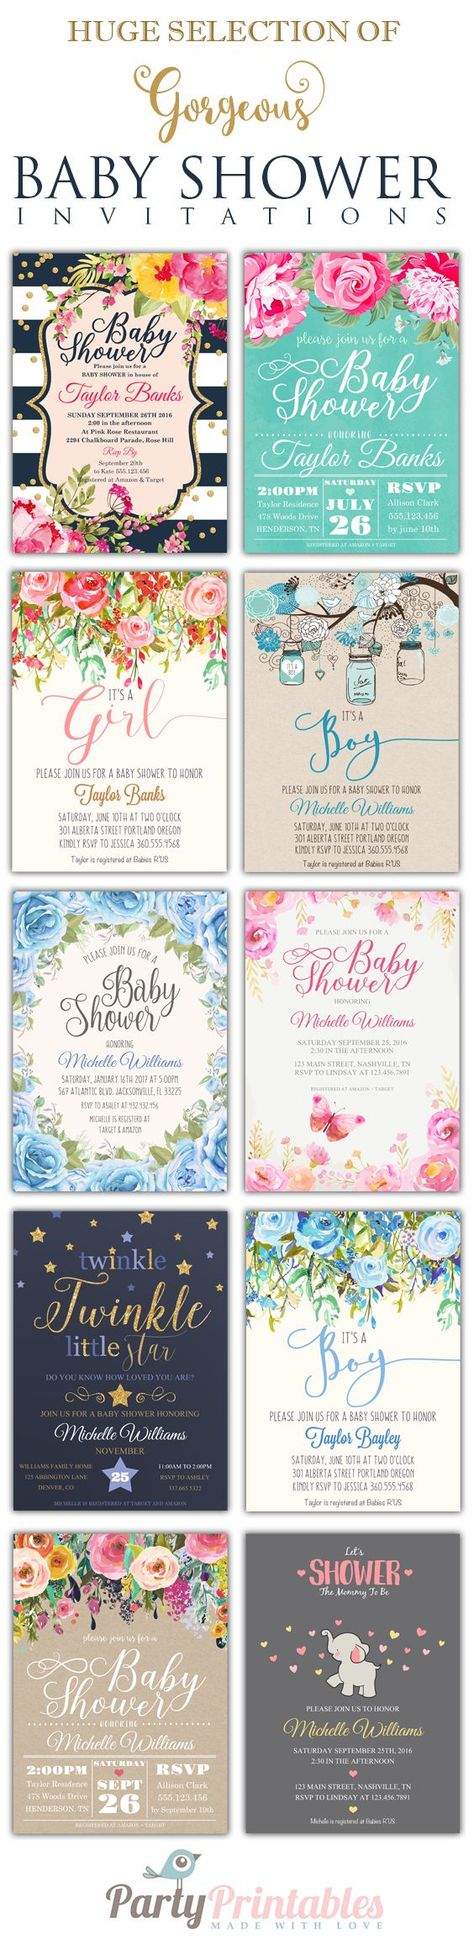 clever baby shower invitation wording%0A Editable PDF Baby Shower Invitation DIY  u     Elegant Vintage Watercolor  Flowers  u     Instant Download Printable Edit in Adobe Reader   Shower  invitations